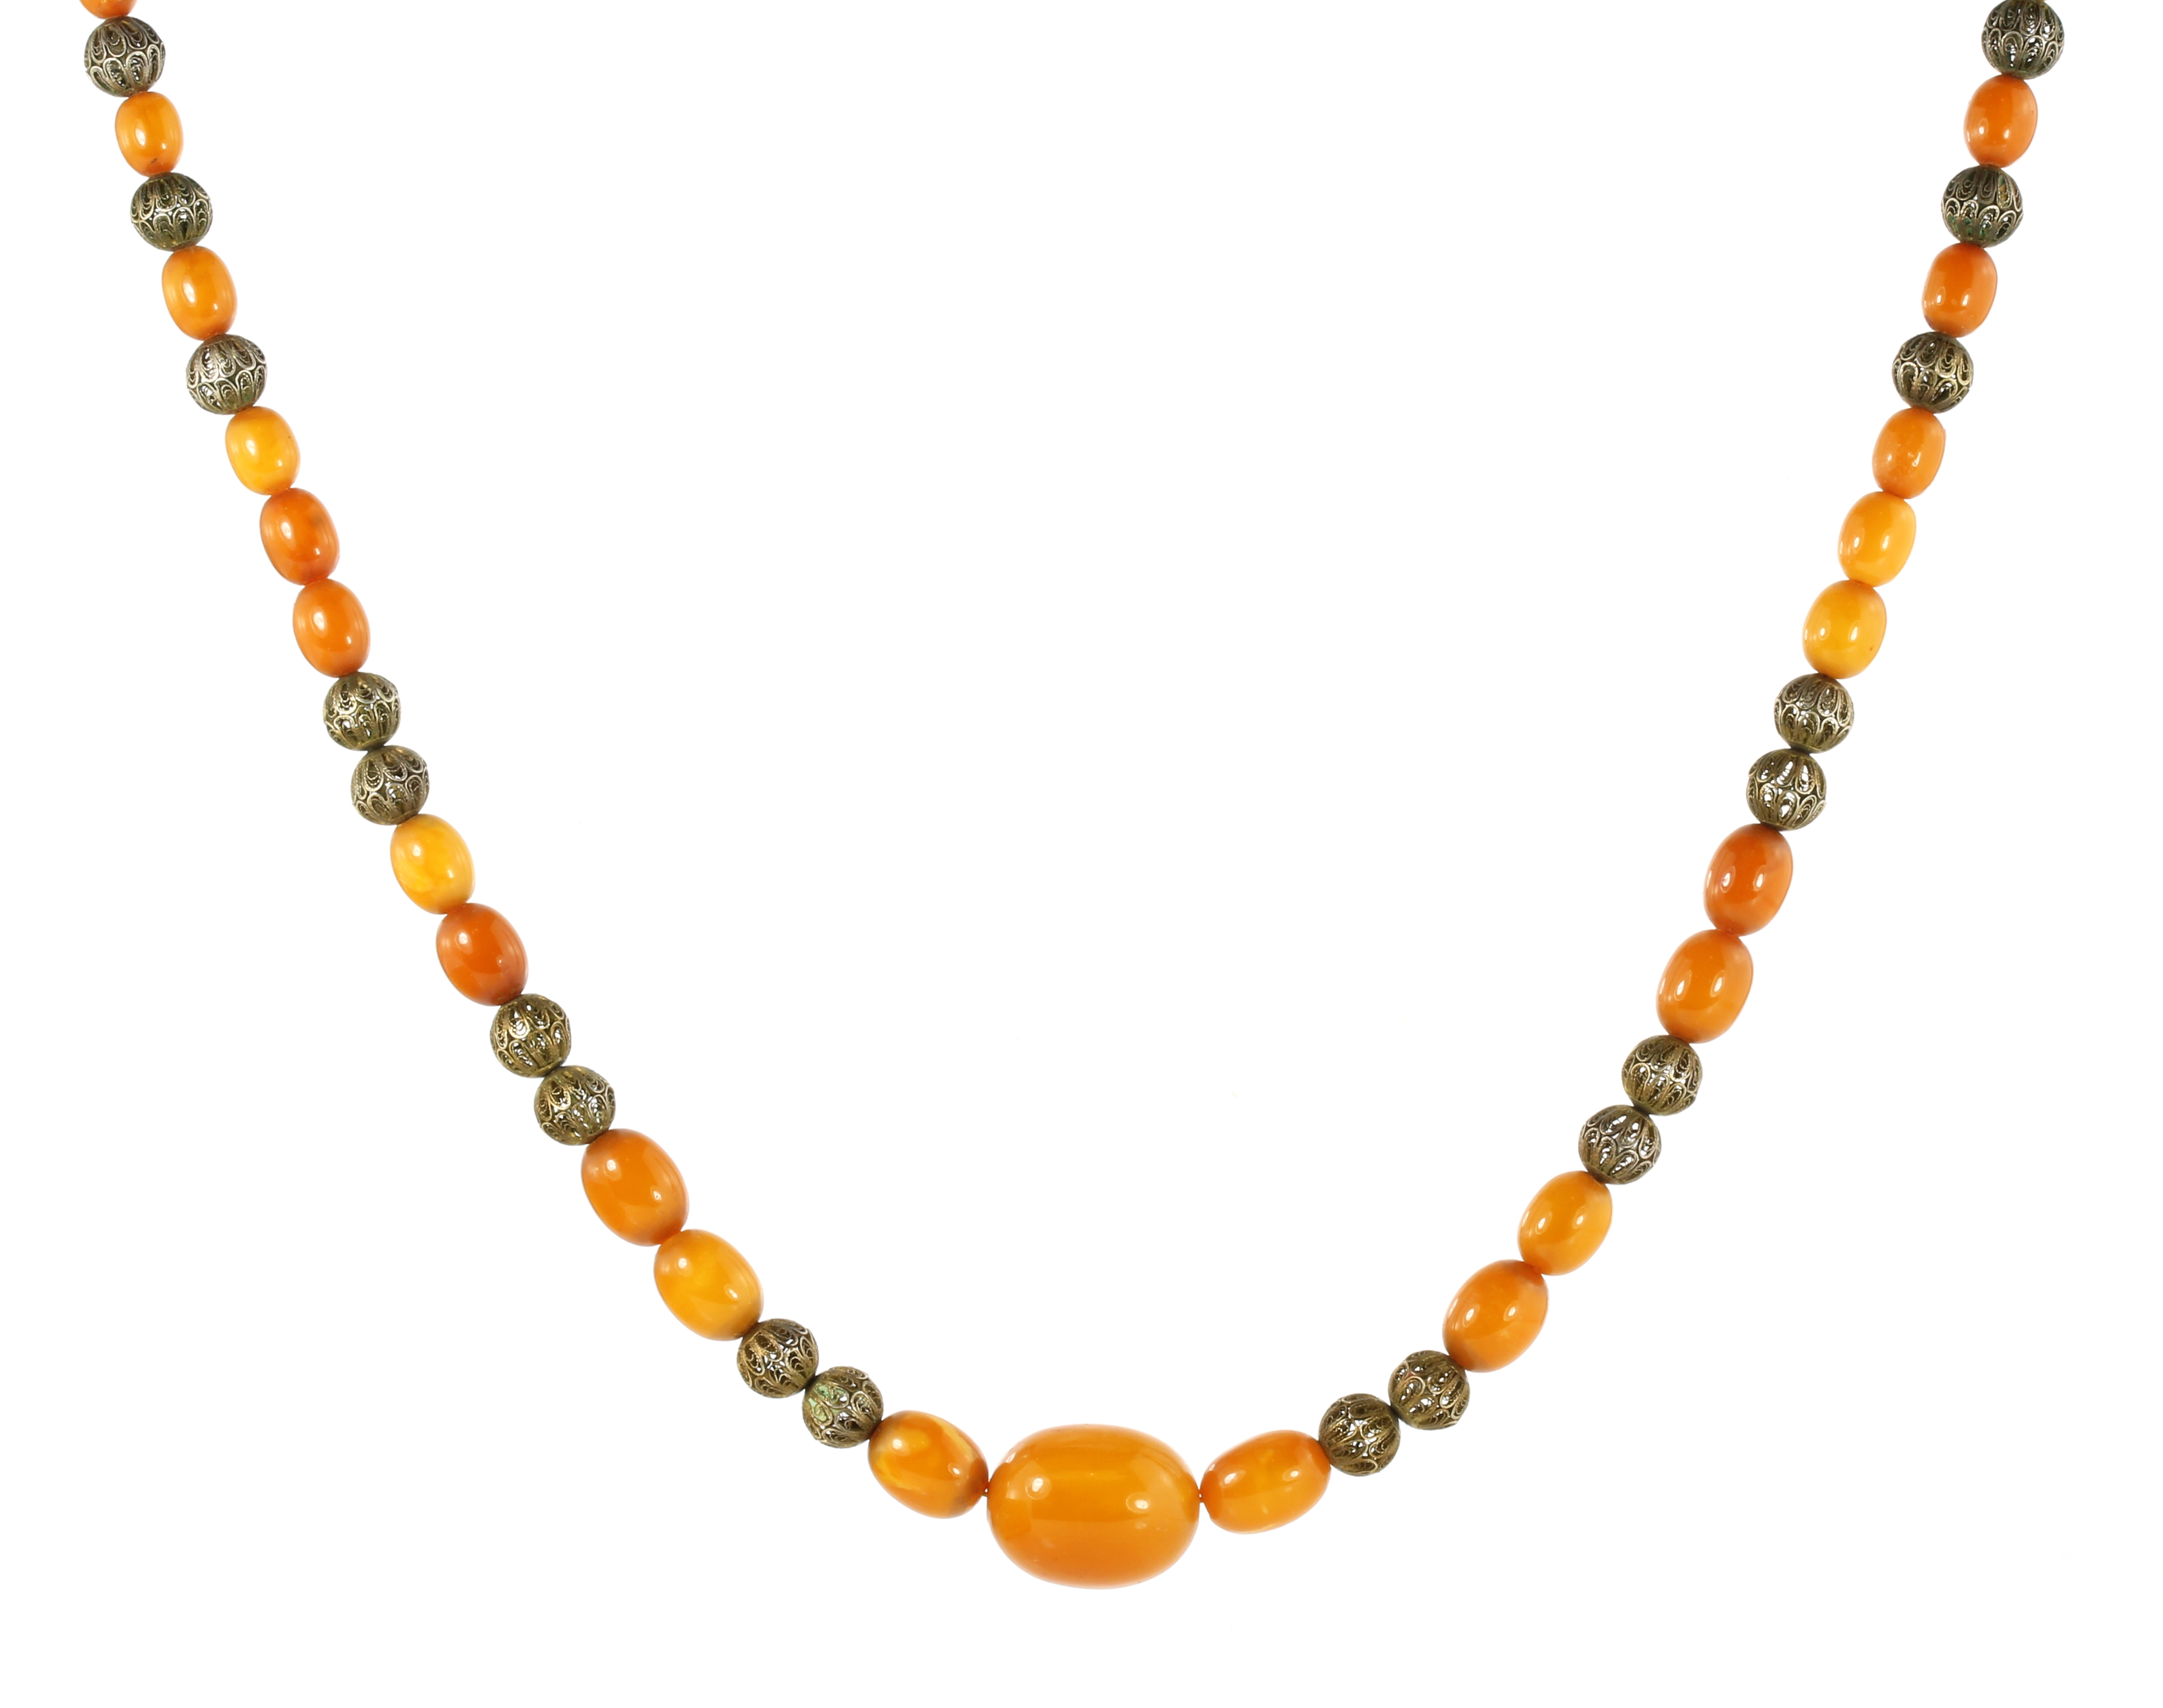 Los 15 - AN ANTIQUE NATURAL AMBER BEAD NECKLACE comprising a single row of forty-one graduated polished